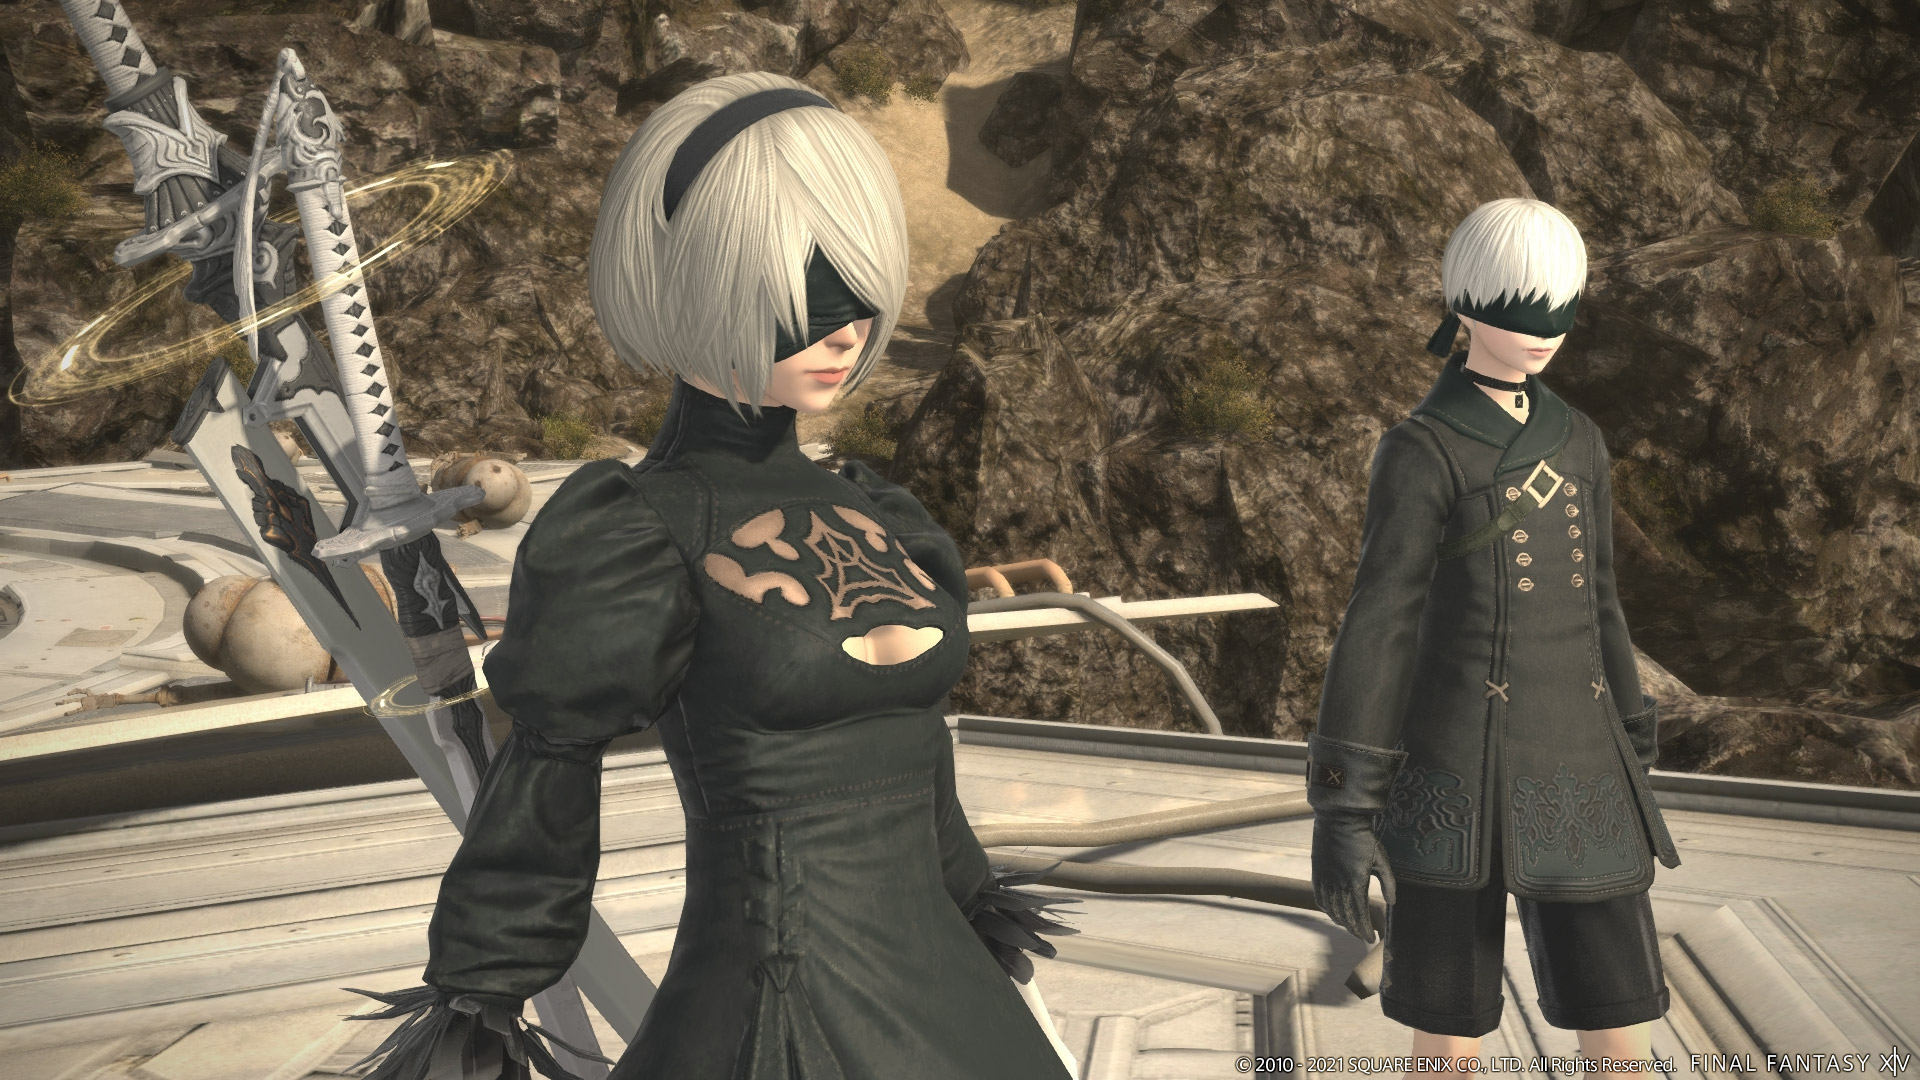 2B and 9S from NieR:Automata make a guest appearance as NPC's in Patch 5.5 of the Shadowbringers expansion for the Final Fantasy XIV video game.